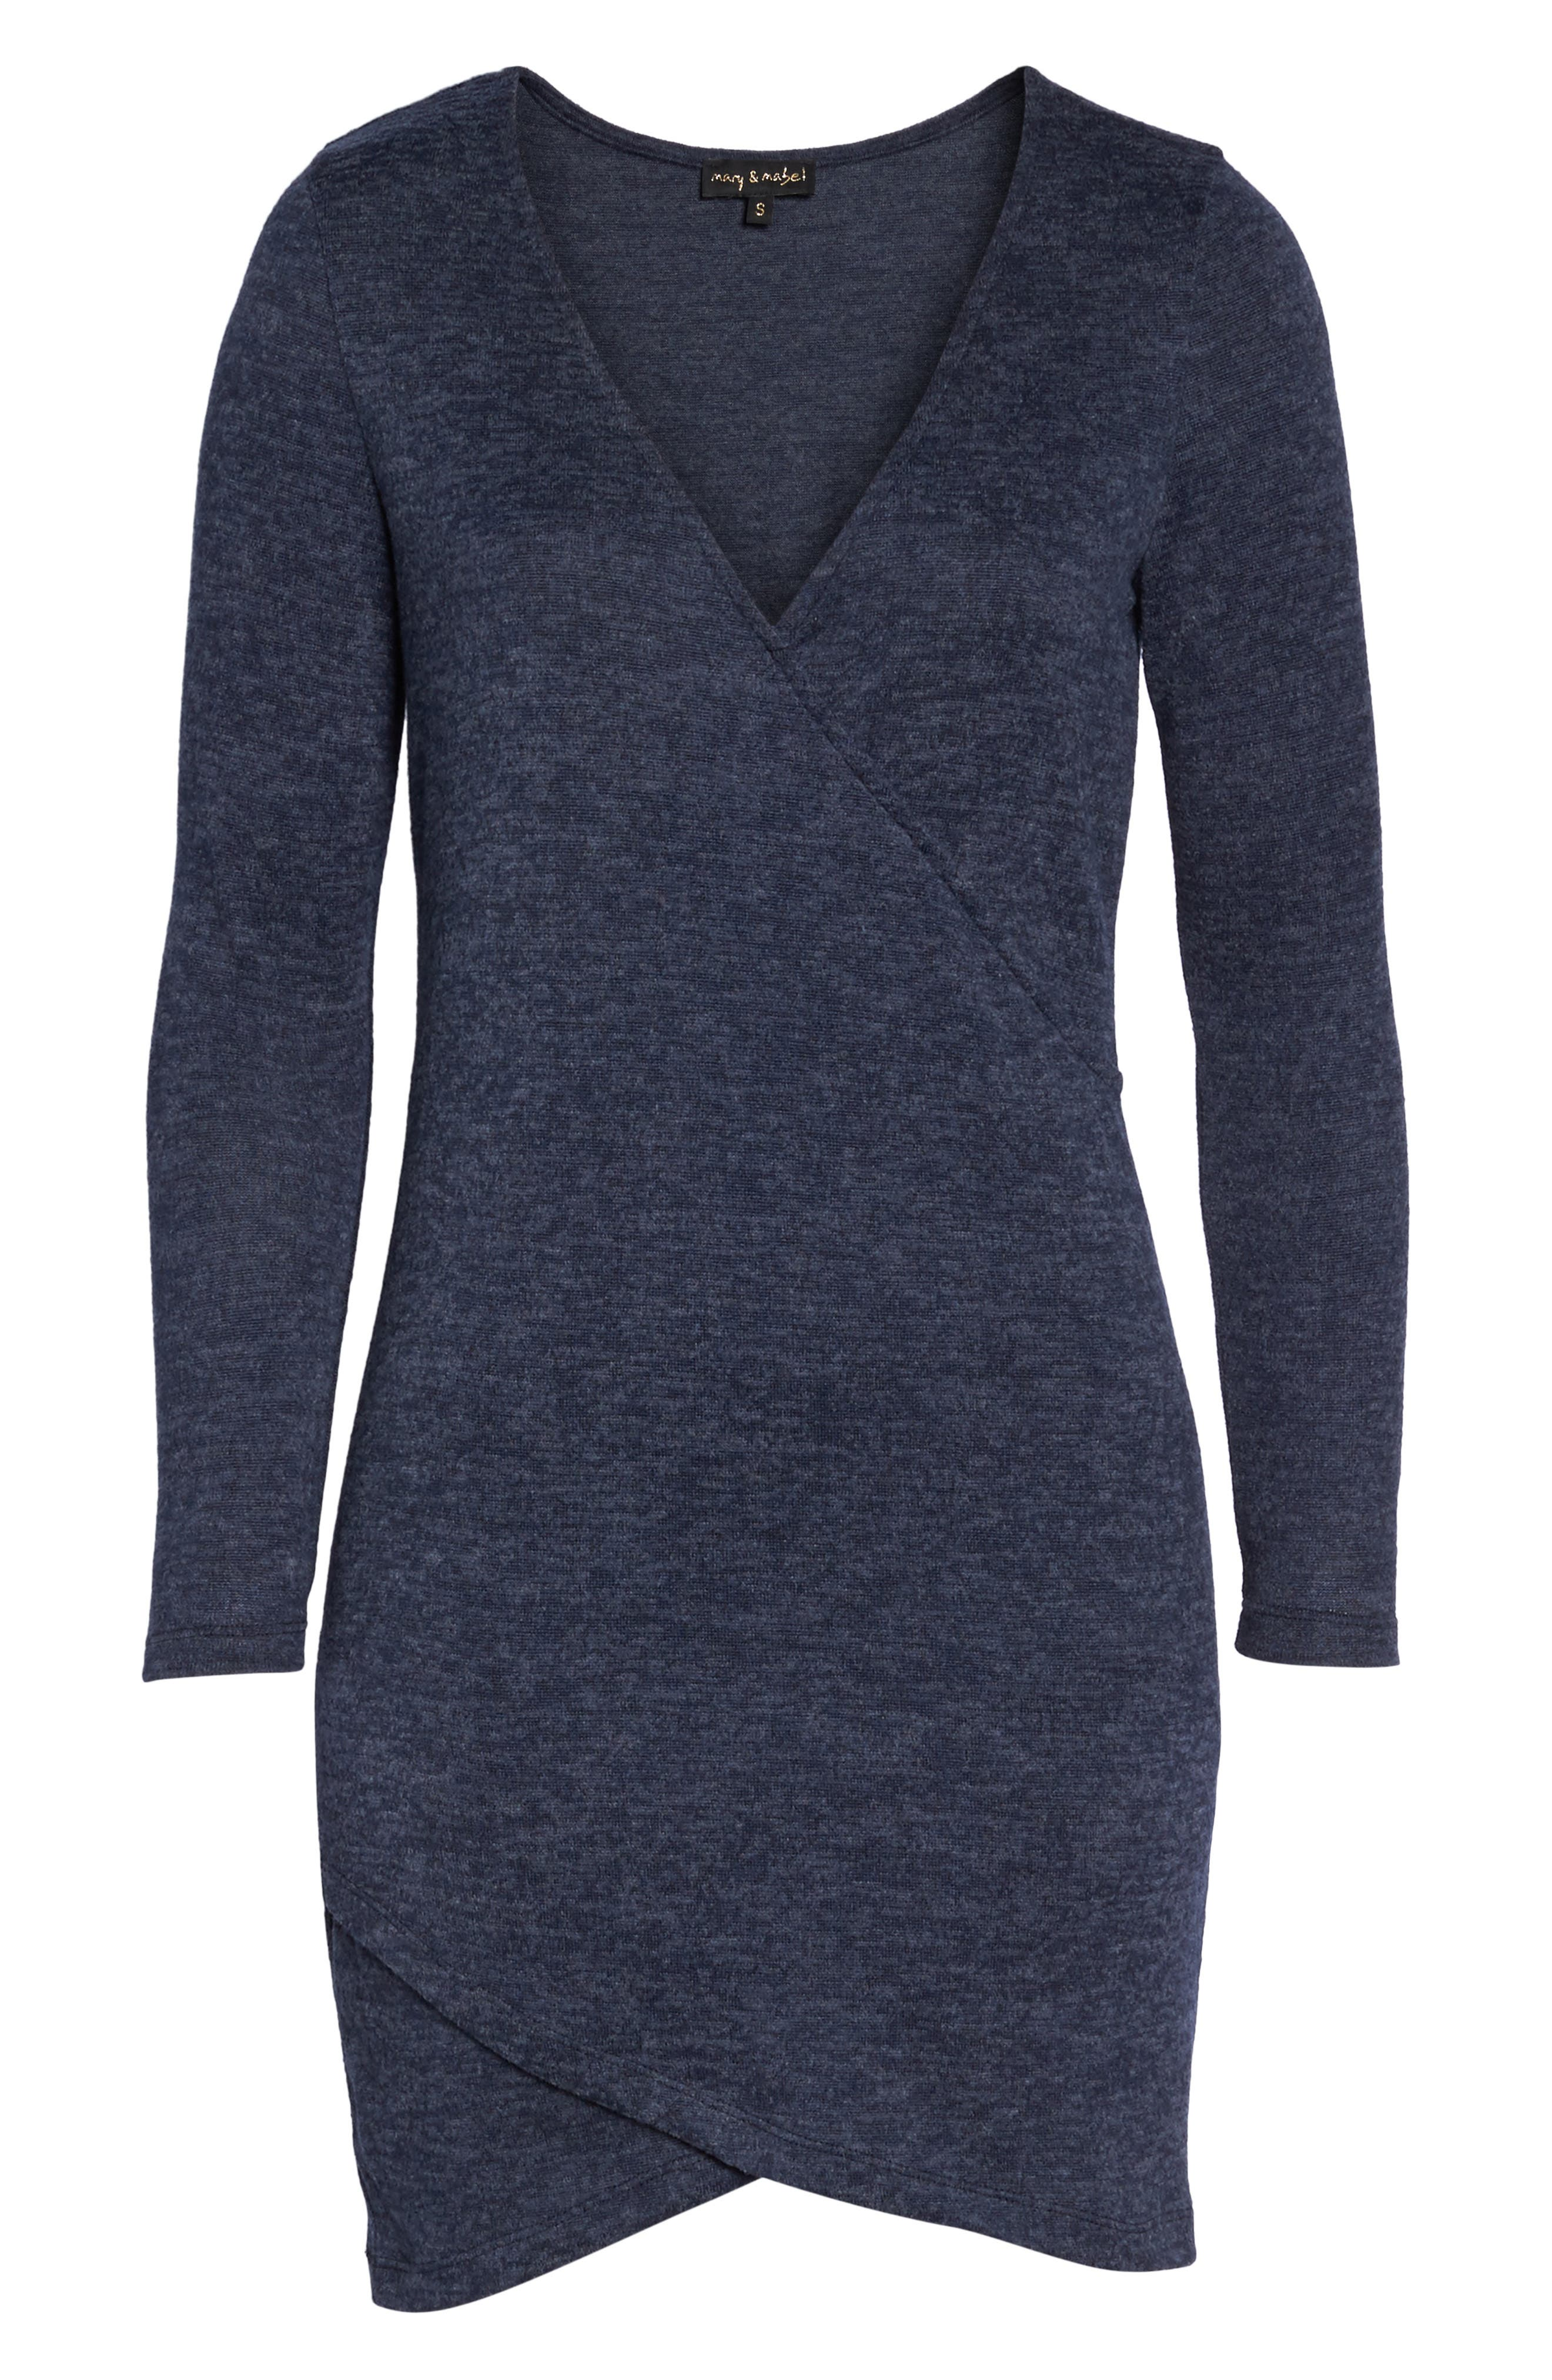 Sweater Dress,                             Alternate thumbnail 6, color,                             420